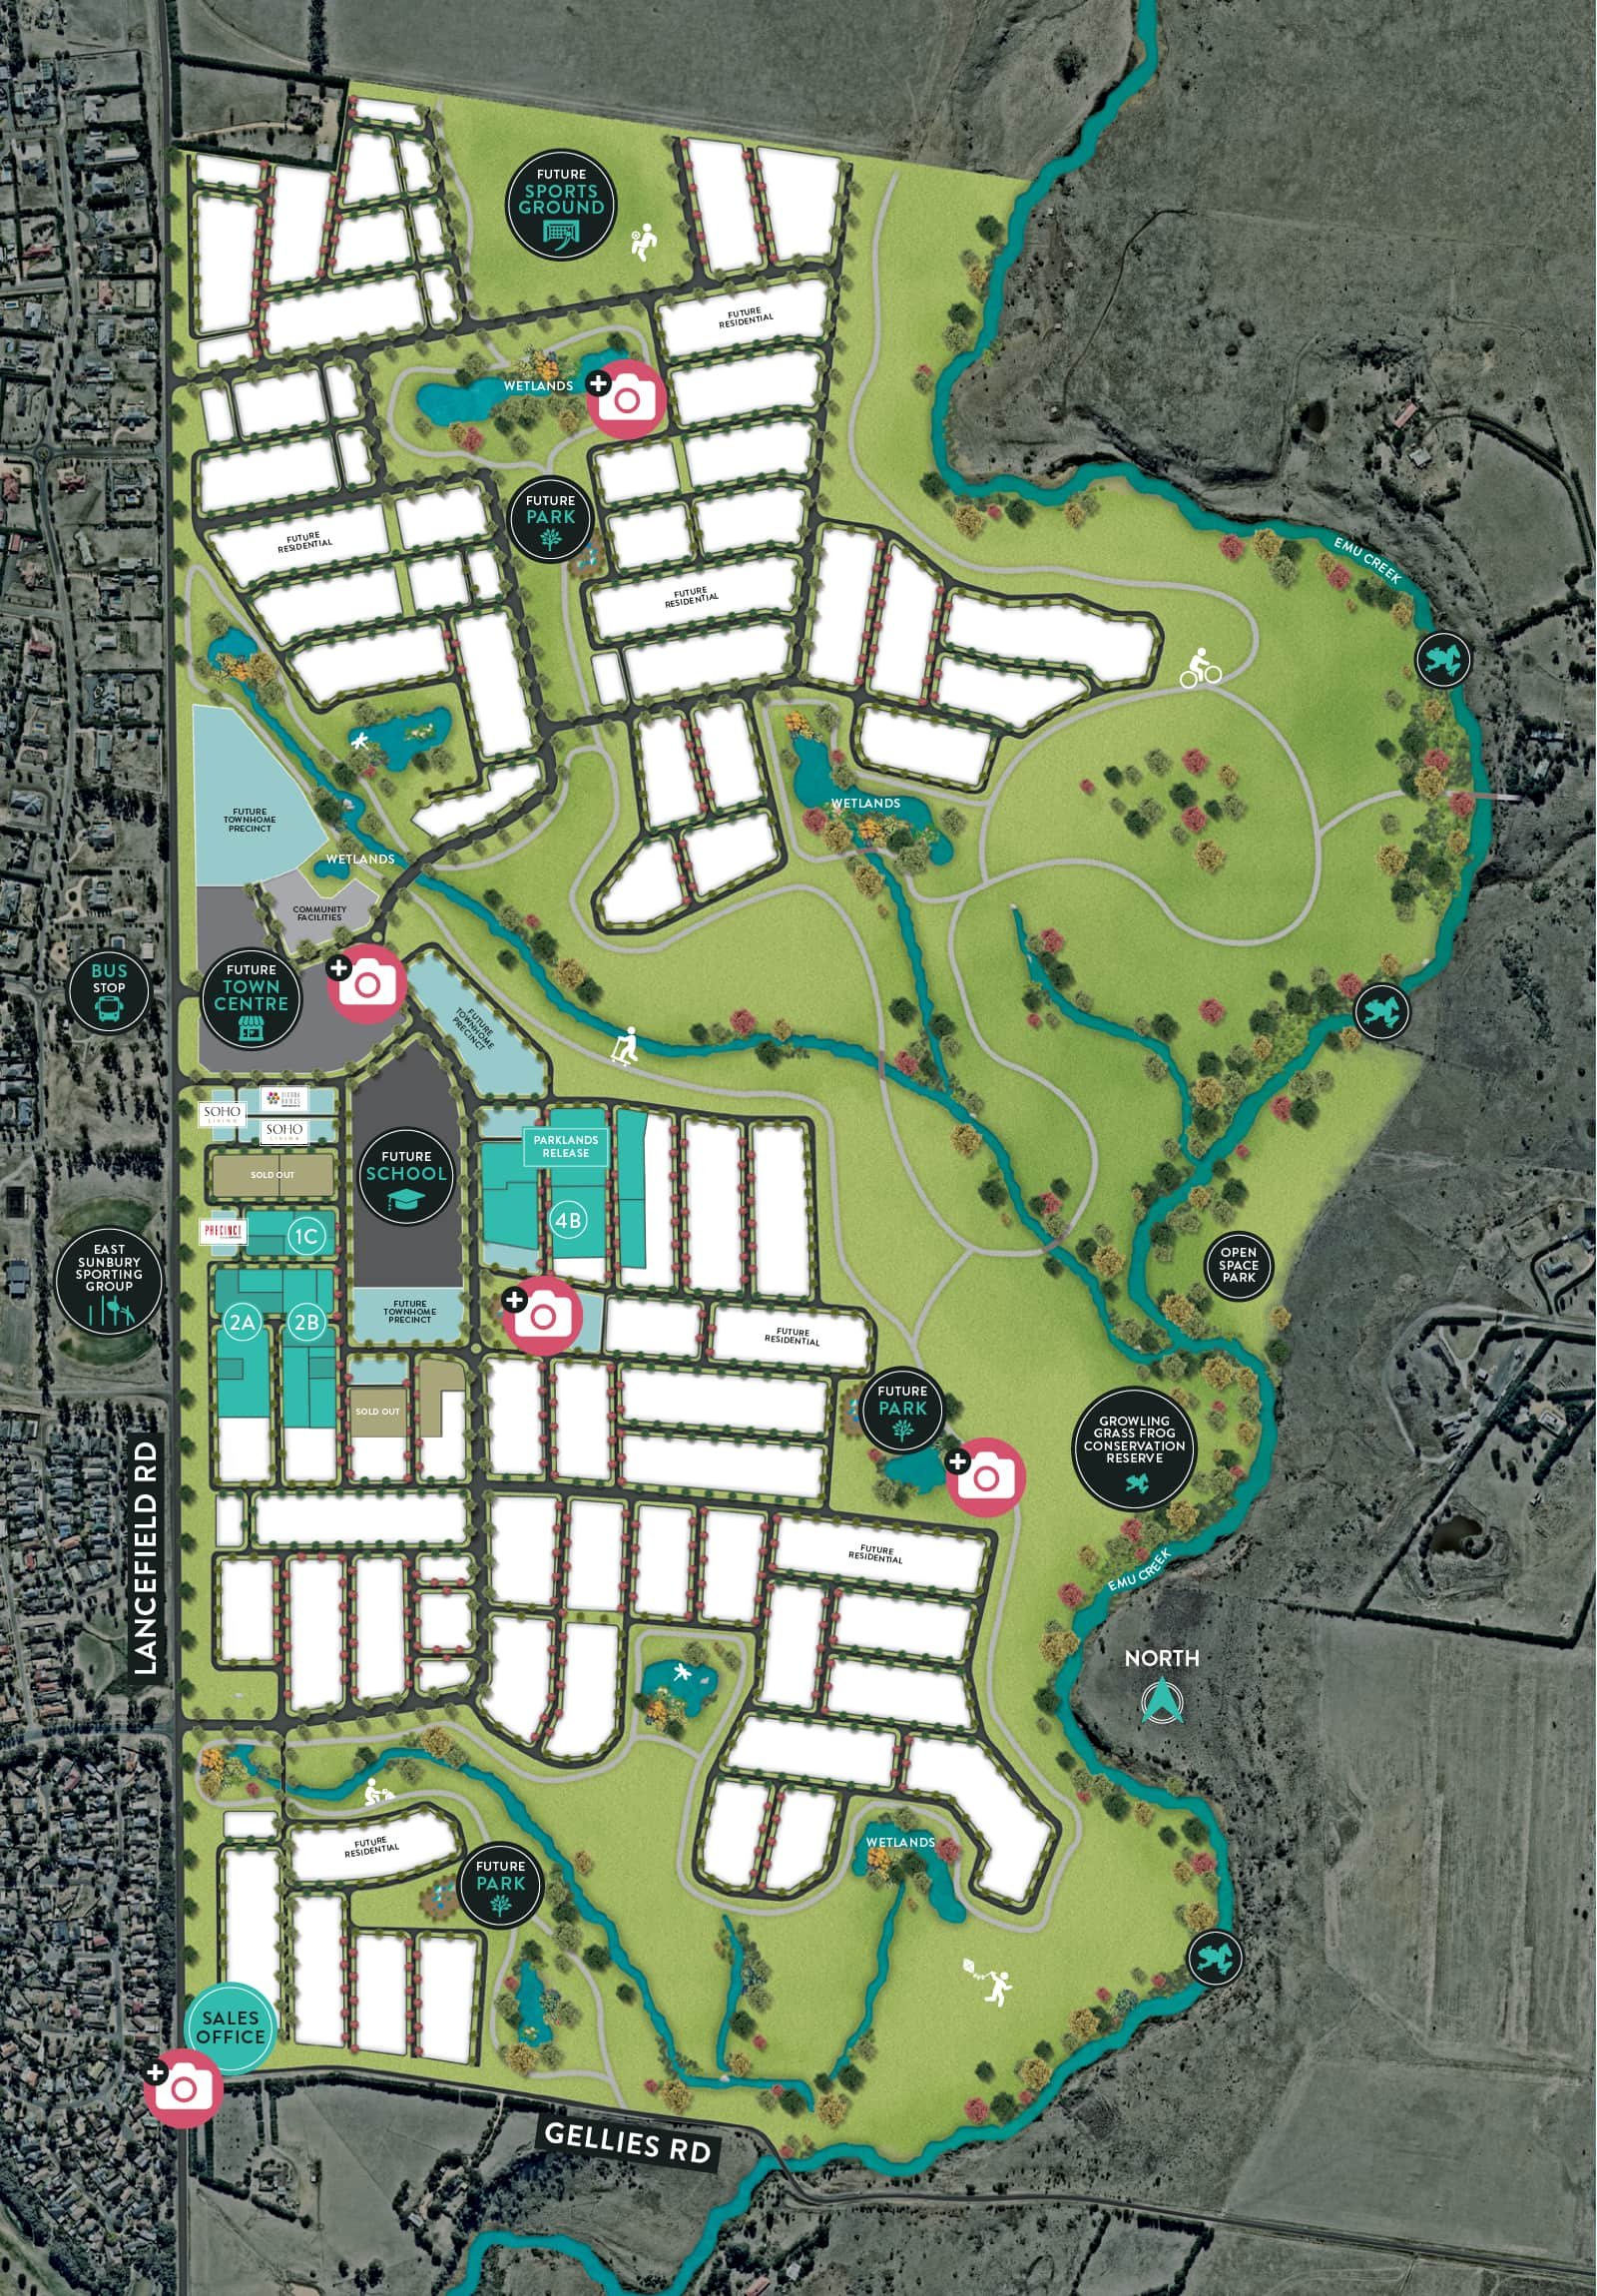 KINGSFIELD - Masterplan Image